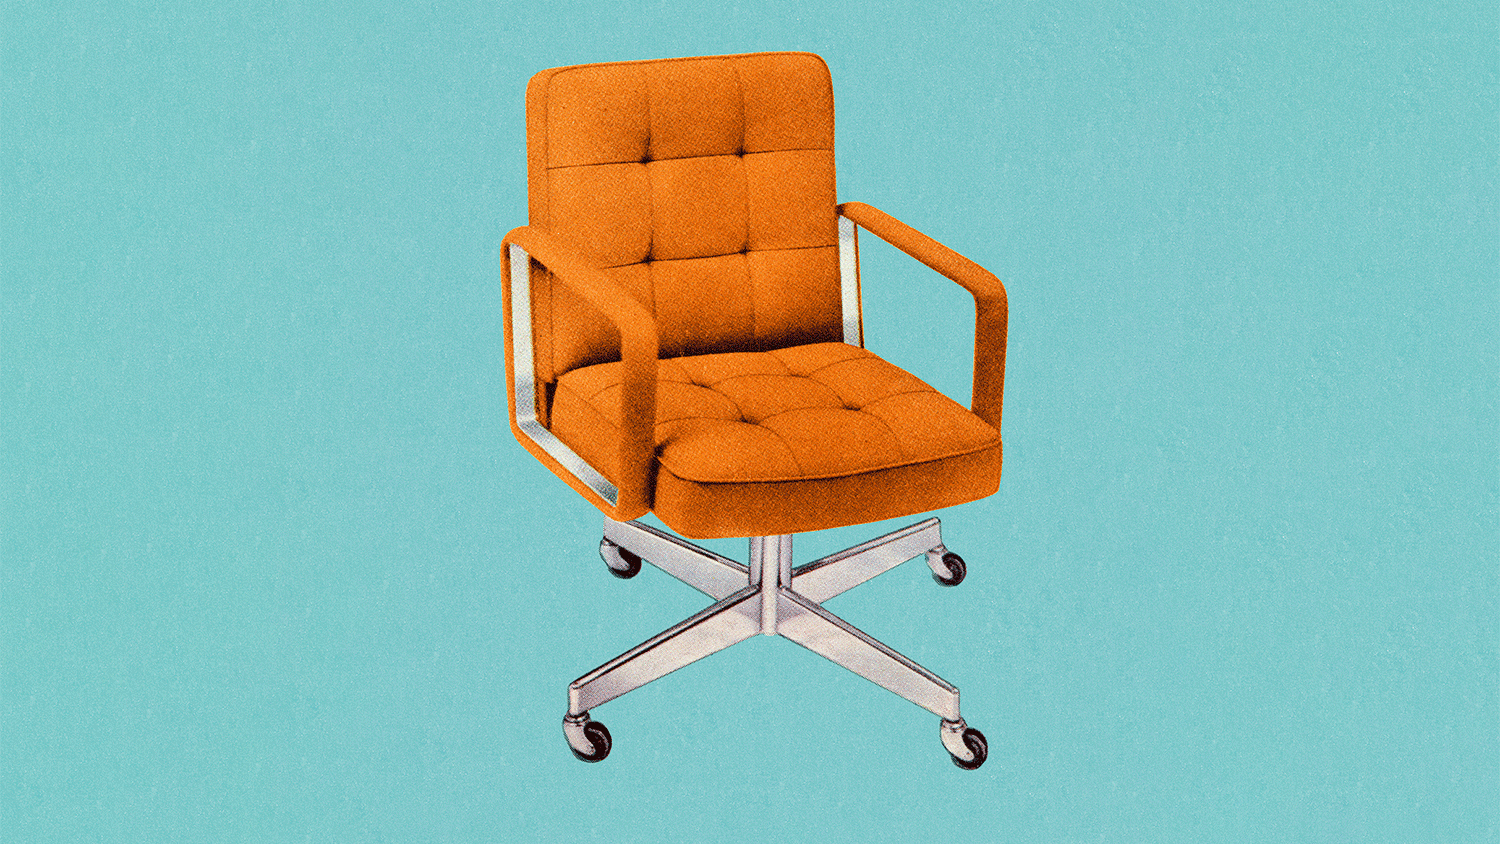 A 60s style chair with orange upholstery sits on a blue background